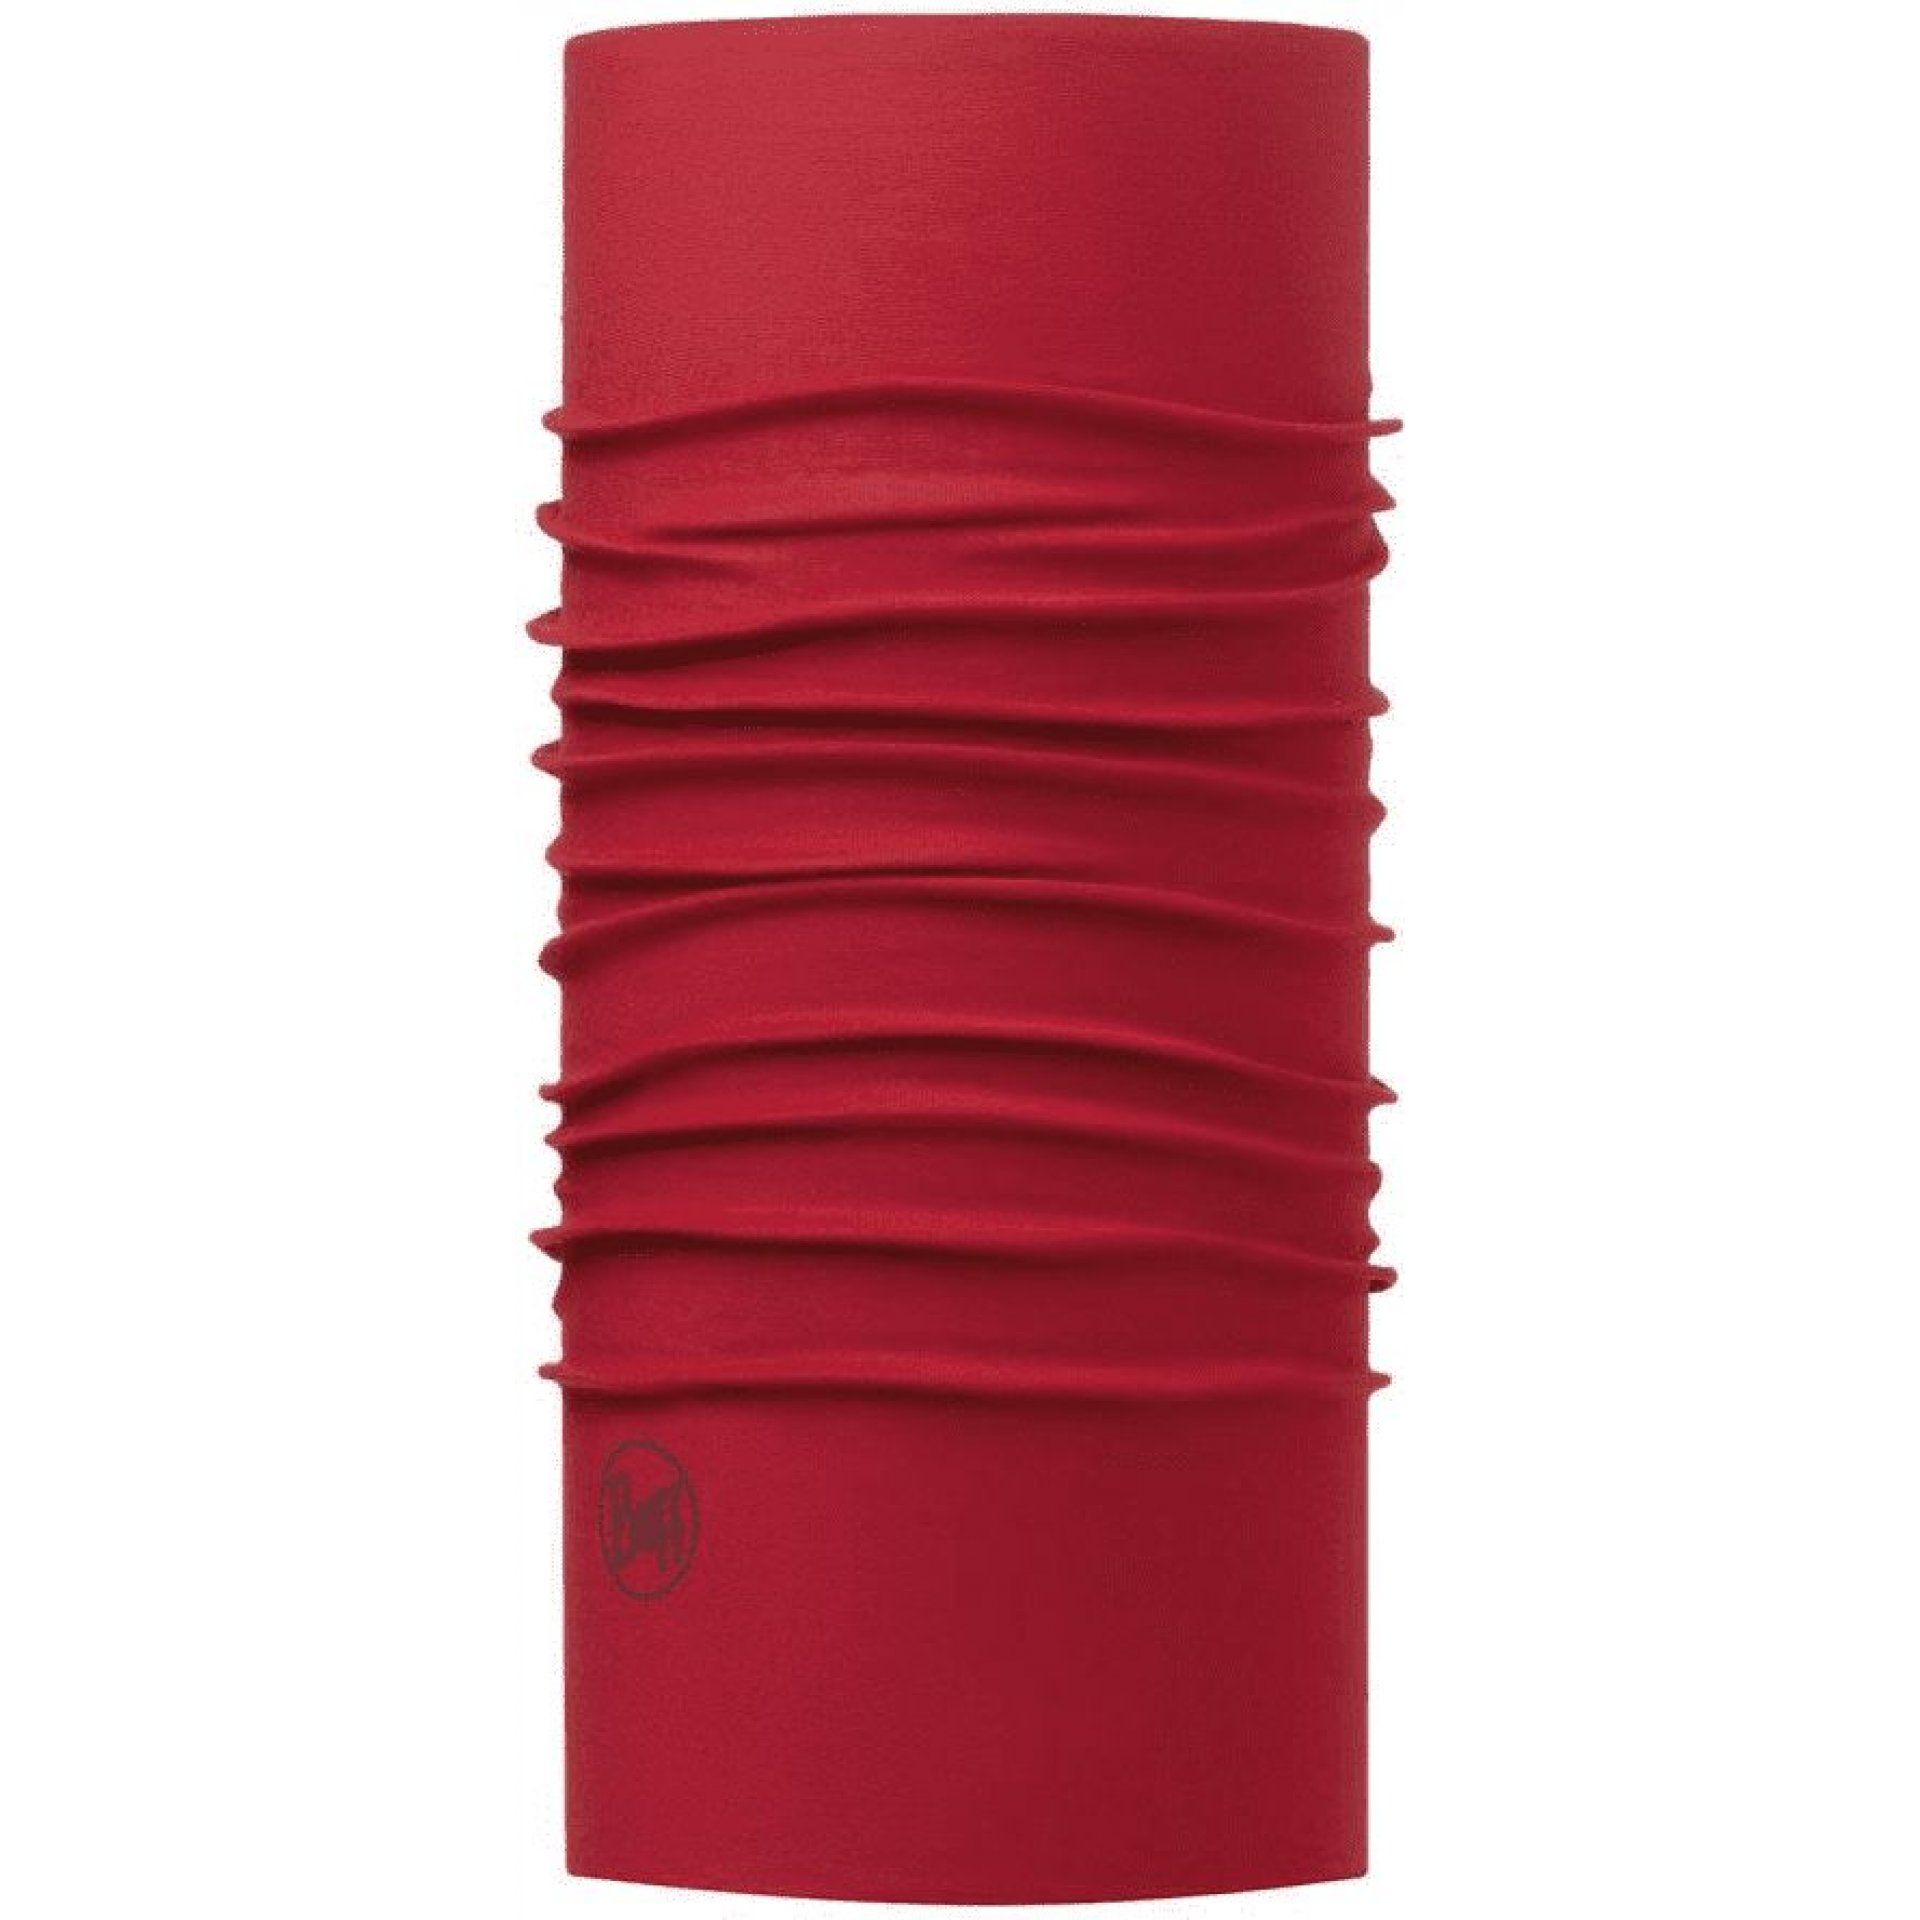 BUFF ORIGINAL US SOLID RED